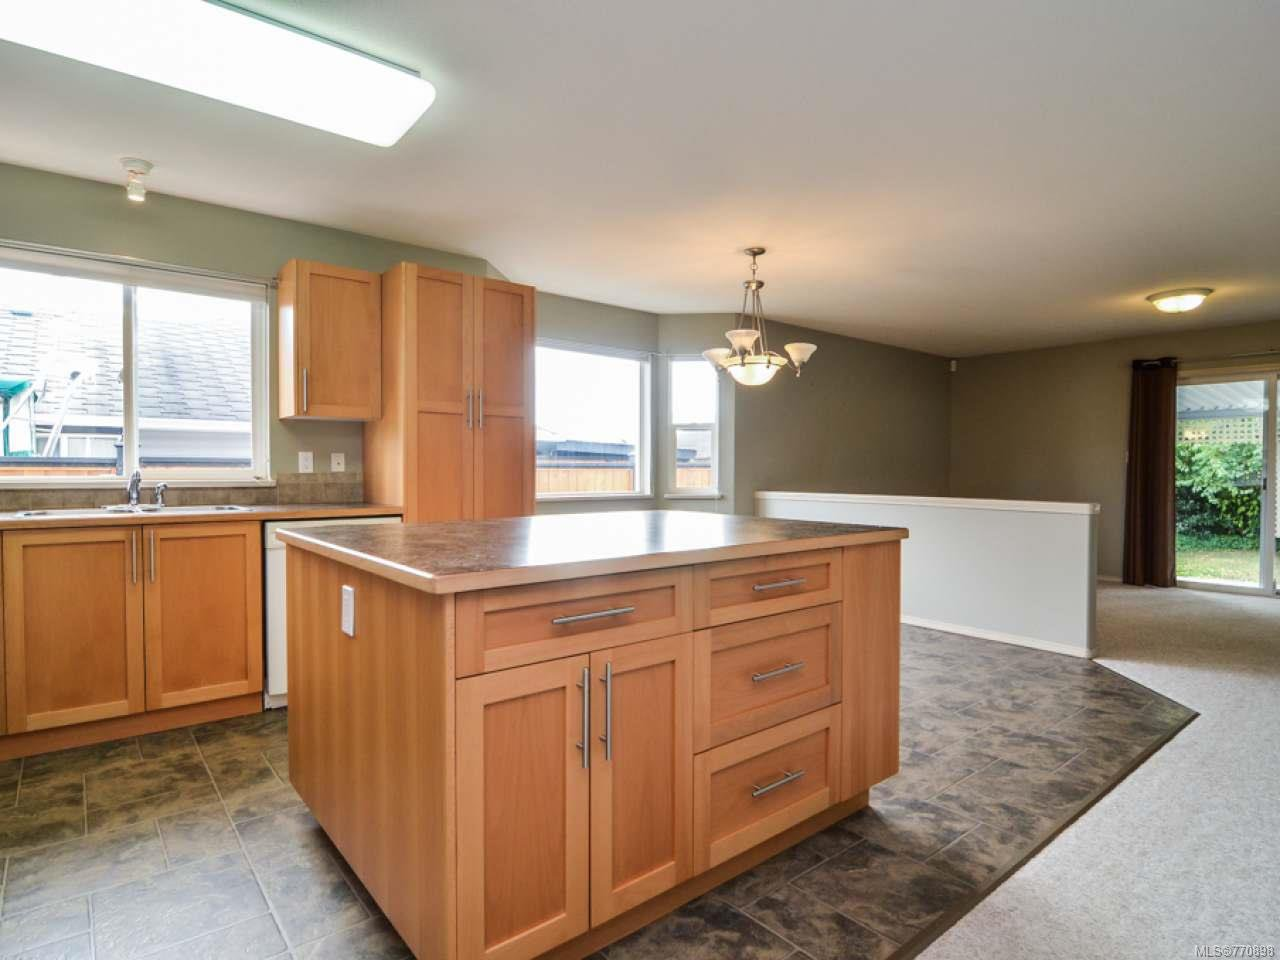 Photo 11: Photos: 135 Colorado Dr in CAMPBELL RIVER: CR Willow Point House for sale (Campbell River)  : MLS®# 770898